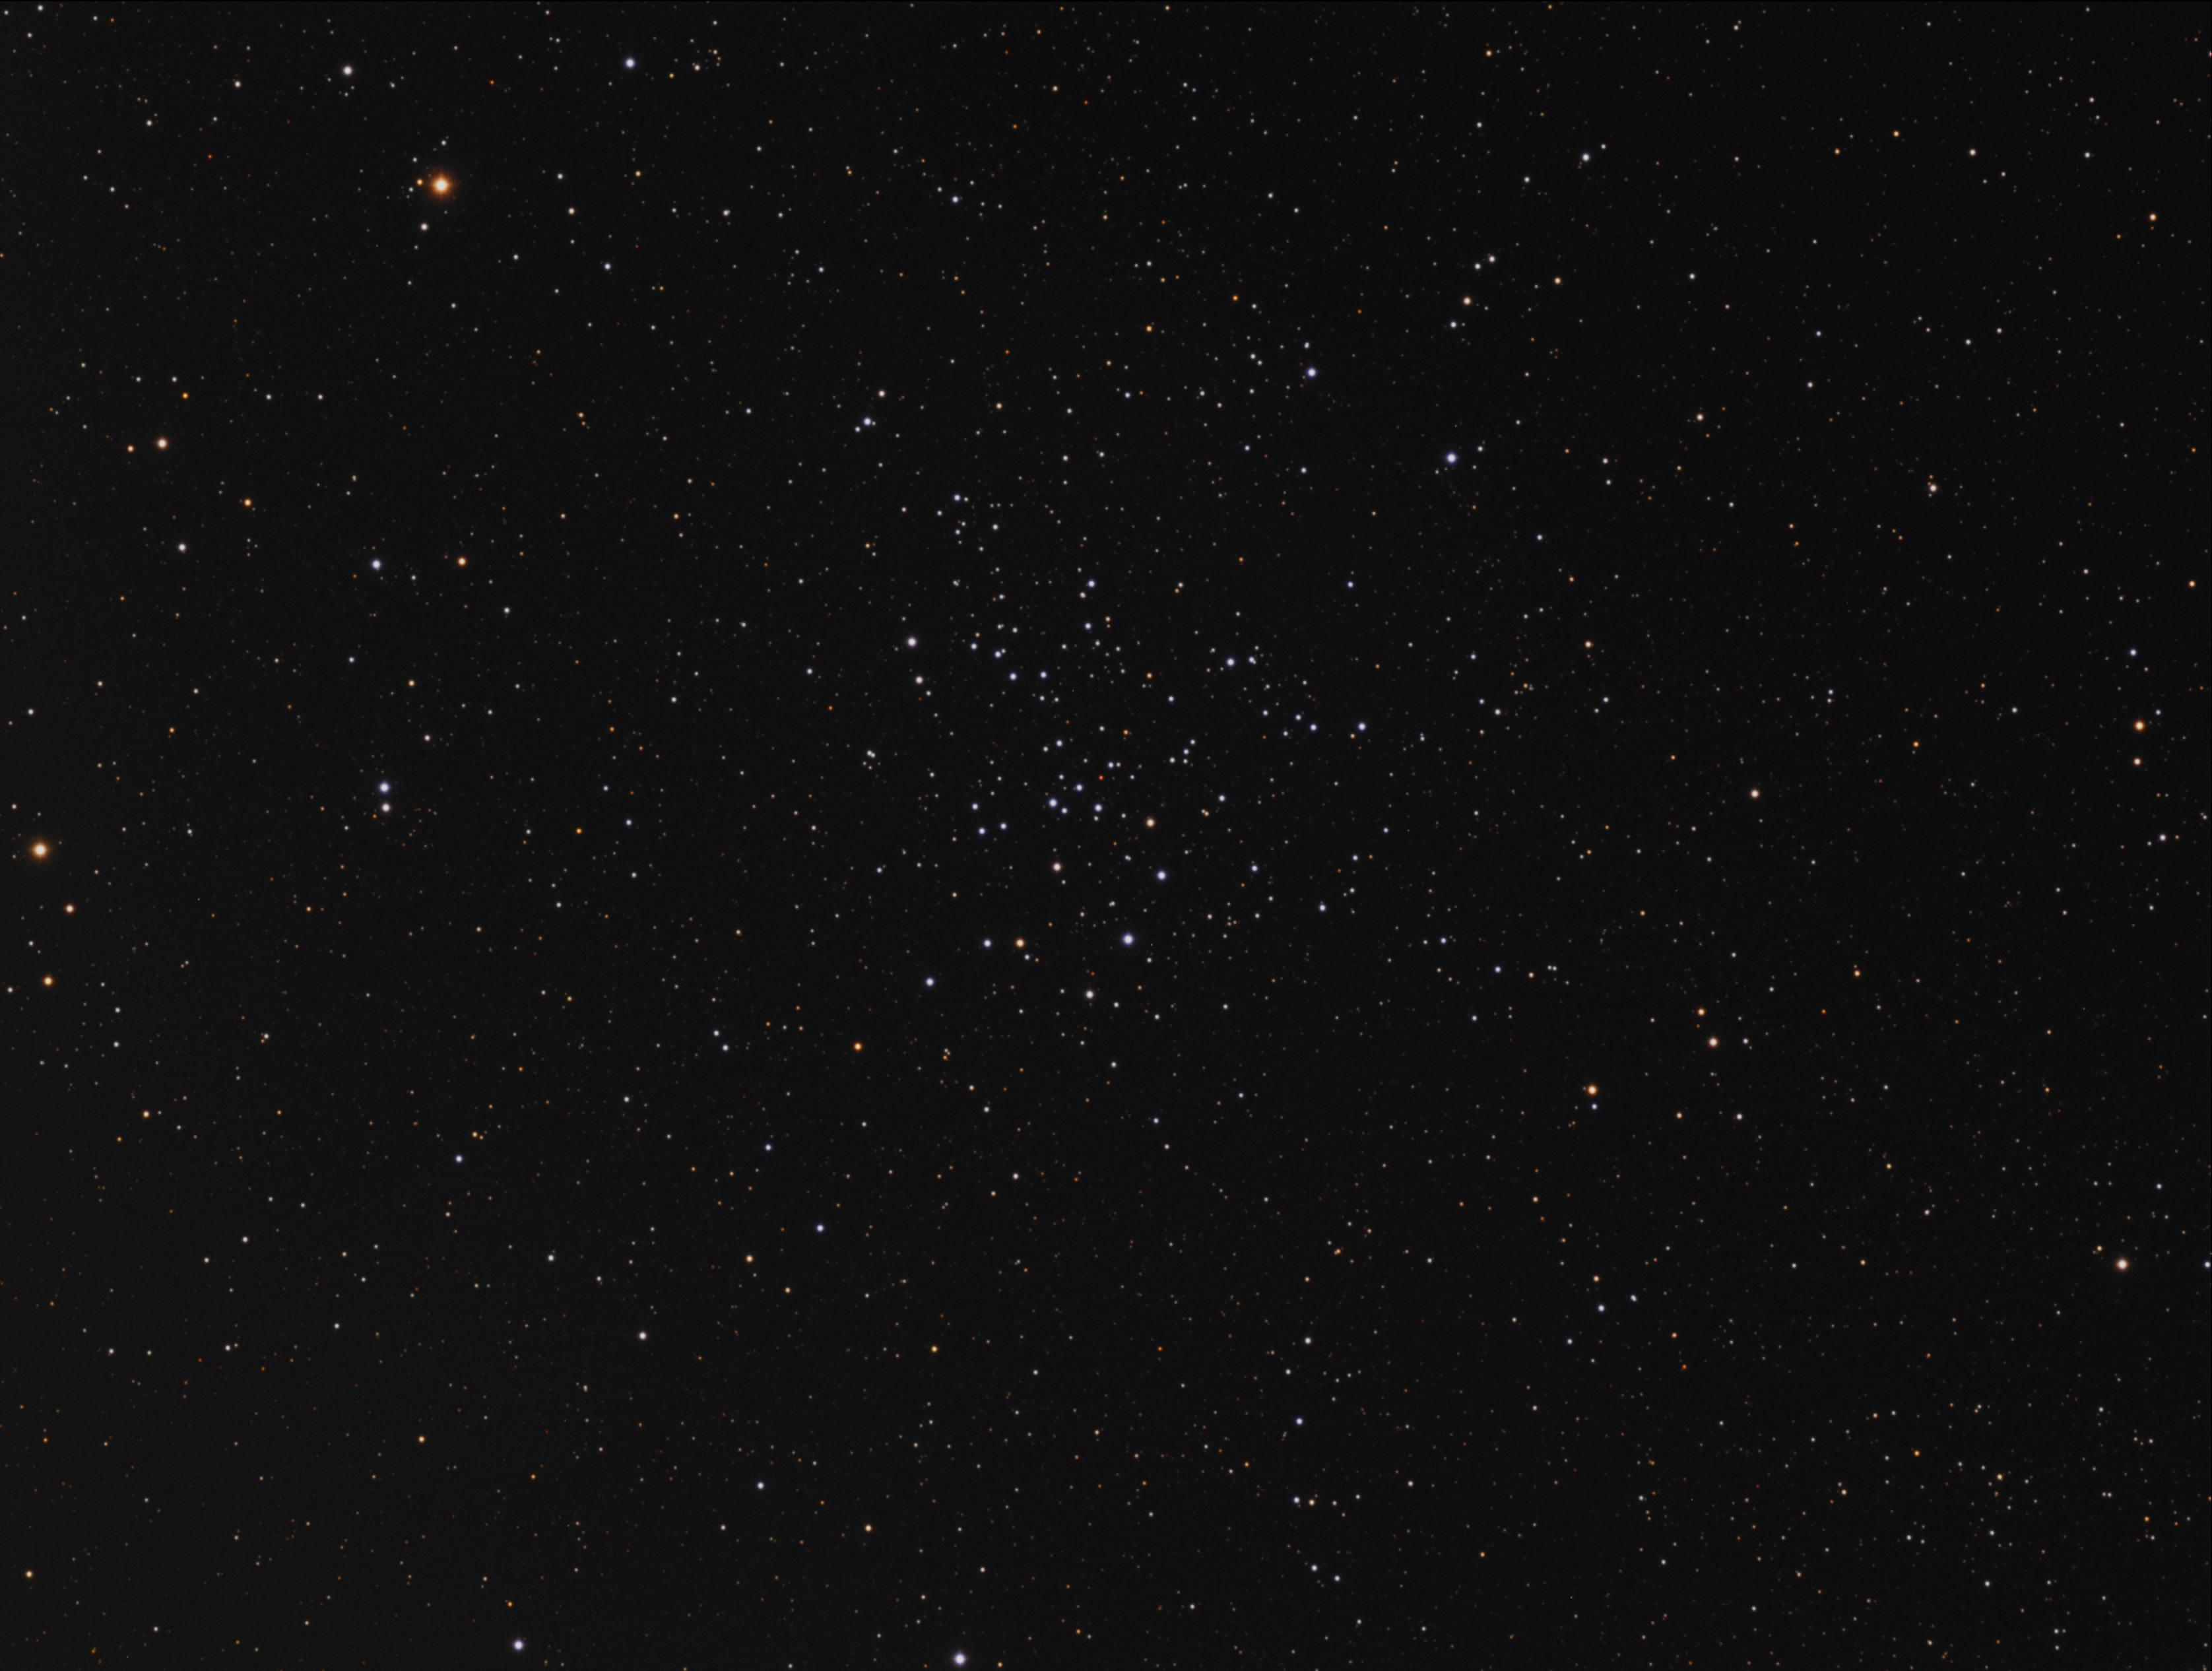 NGC 1528 - Open Cluster